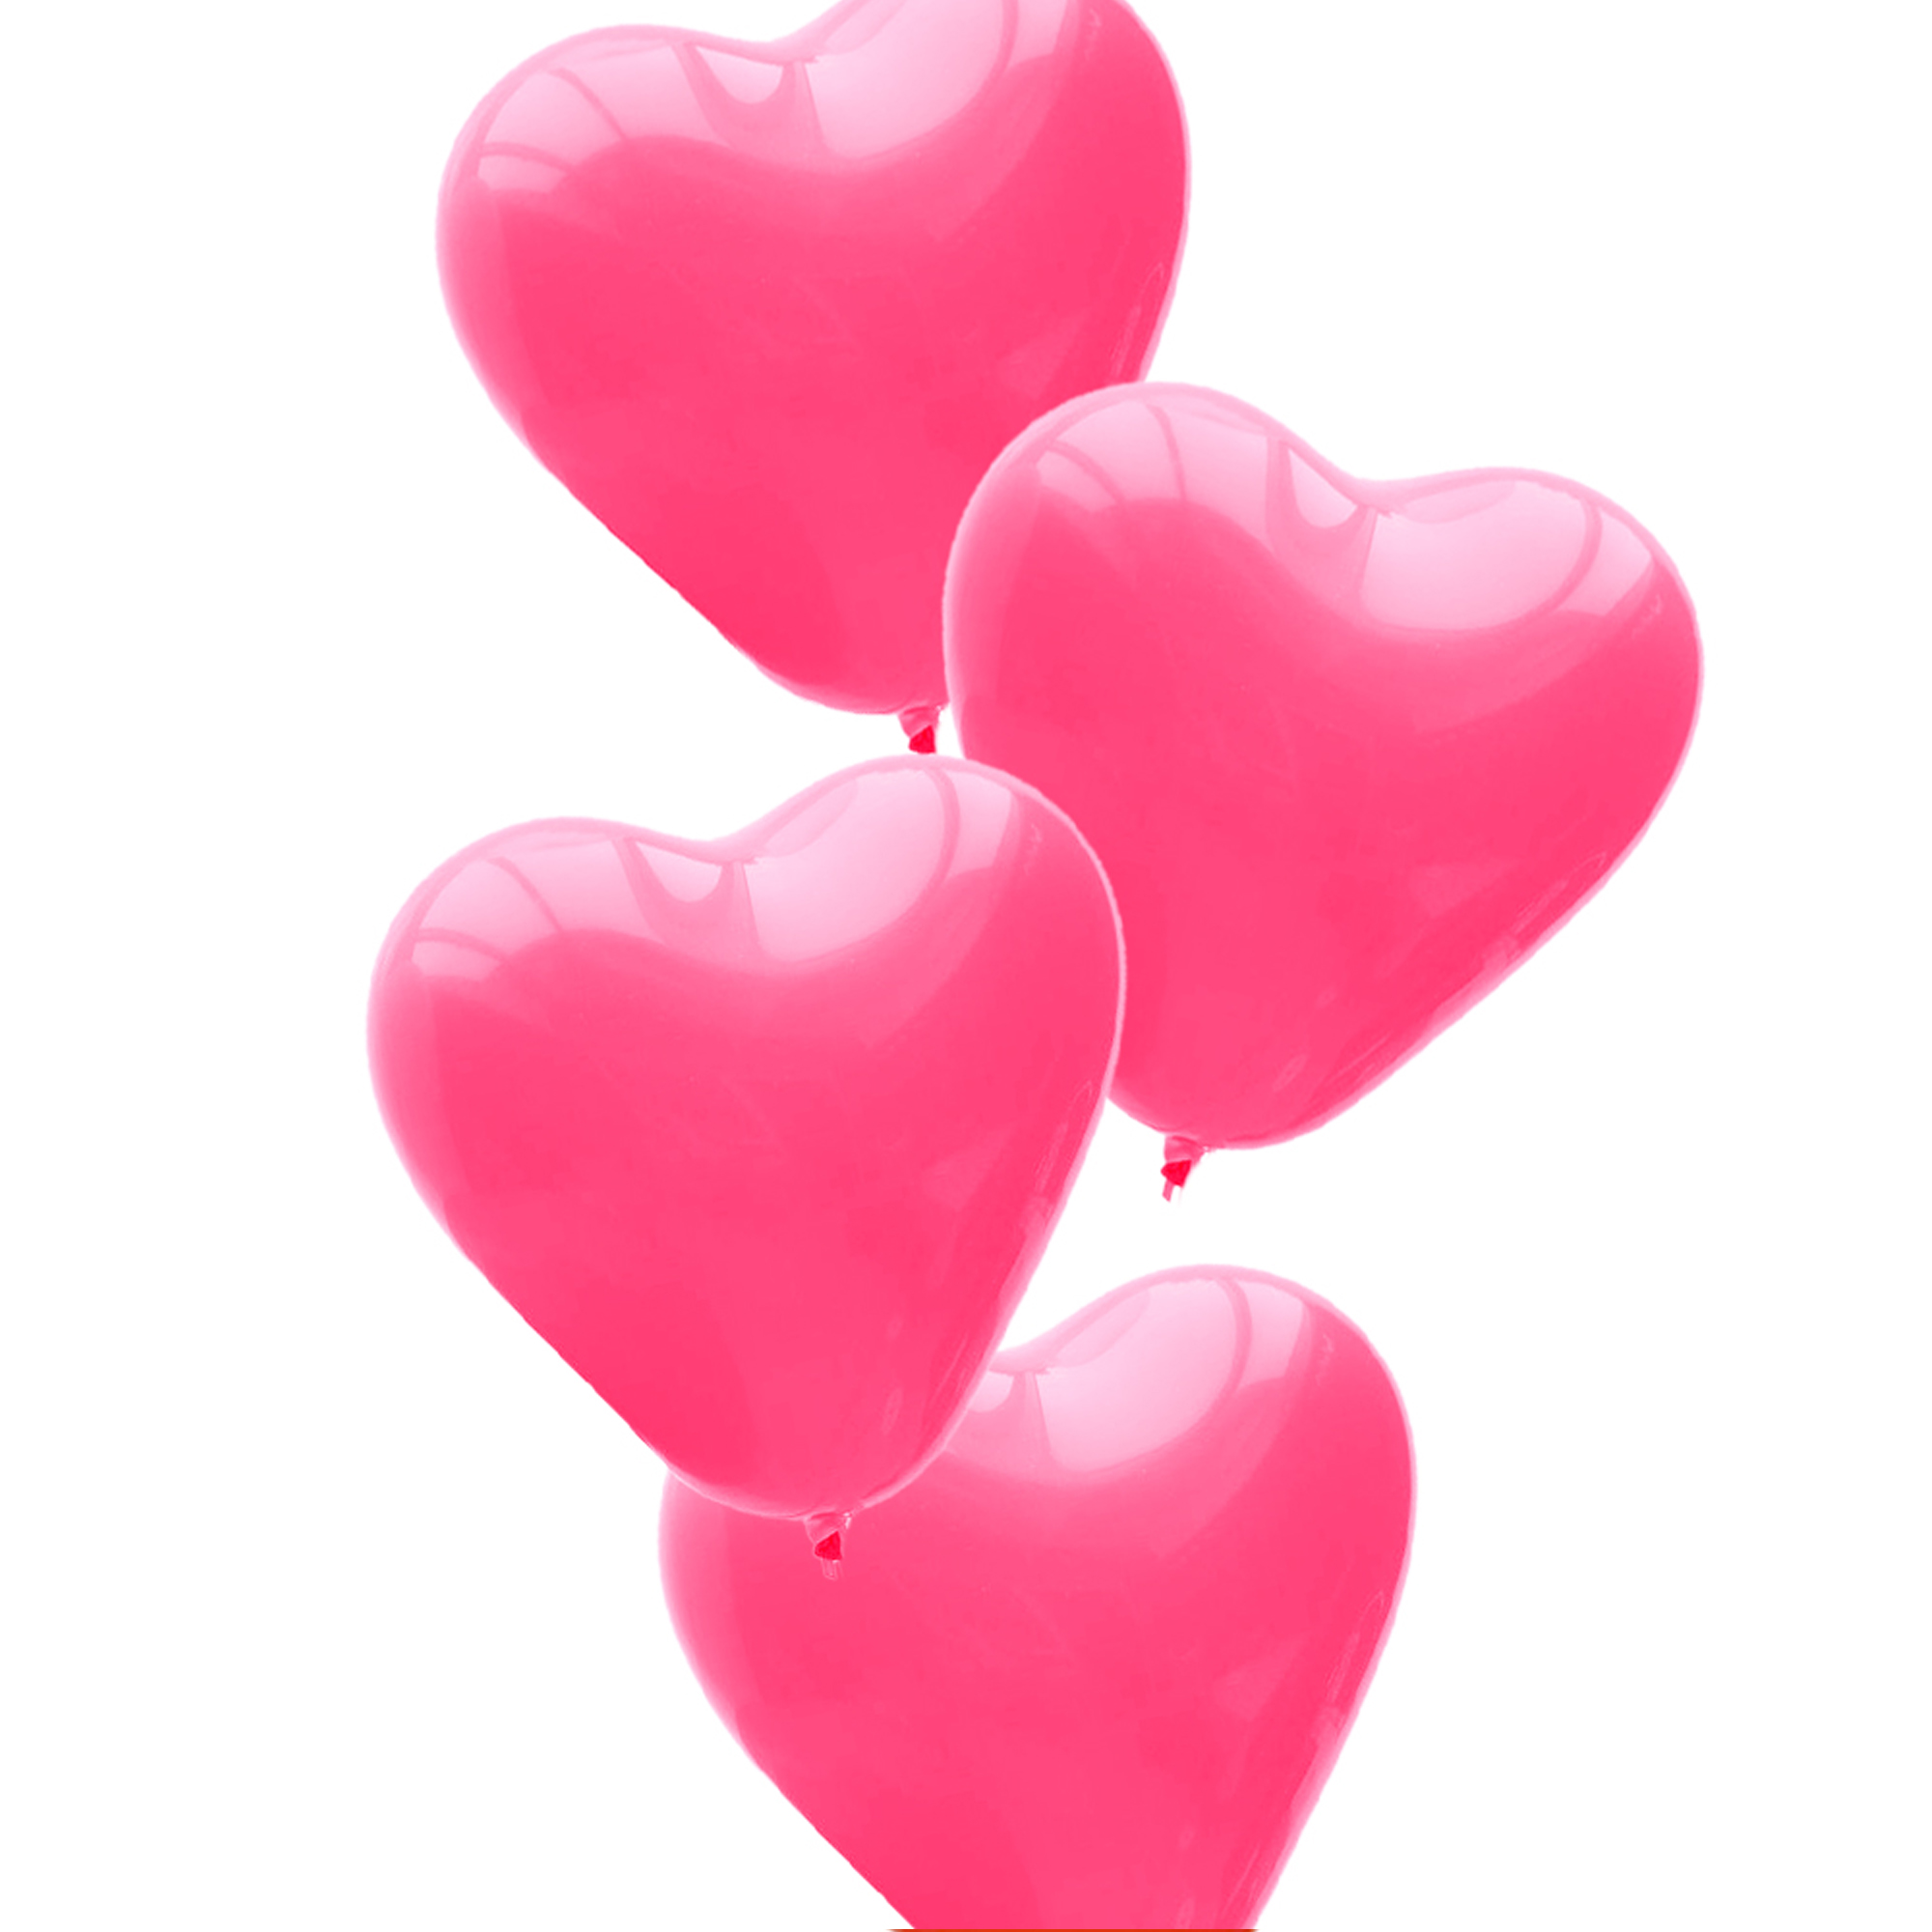 100pcs, The Elixir Party Heart Balloons 100% Latex Helium Quality Heart Shape Balloon for Party Balloons, Pink